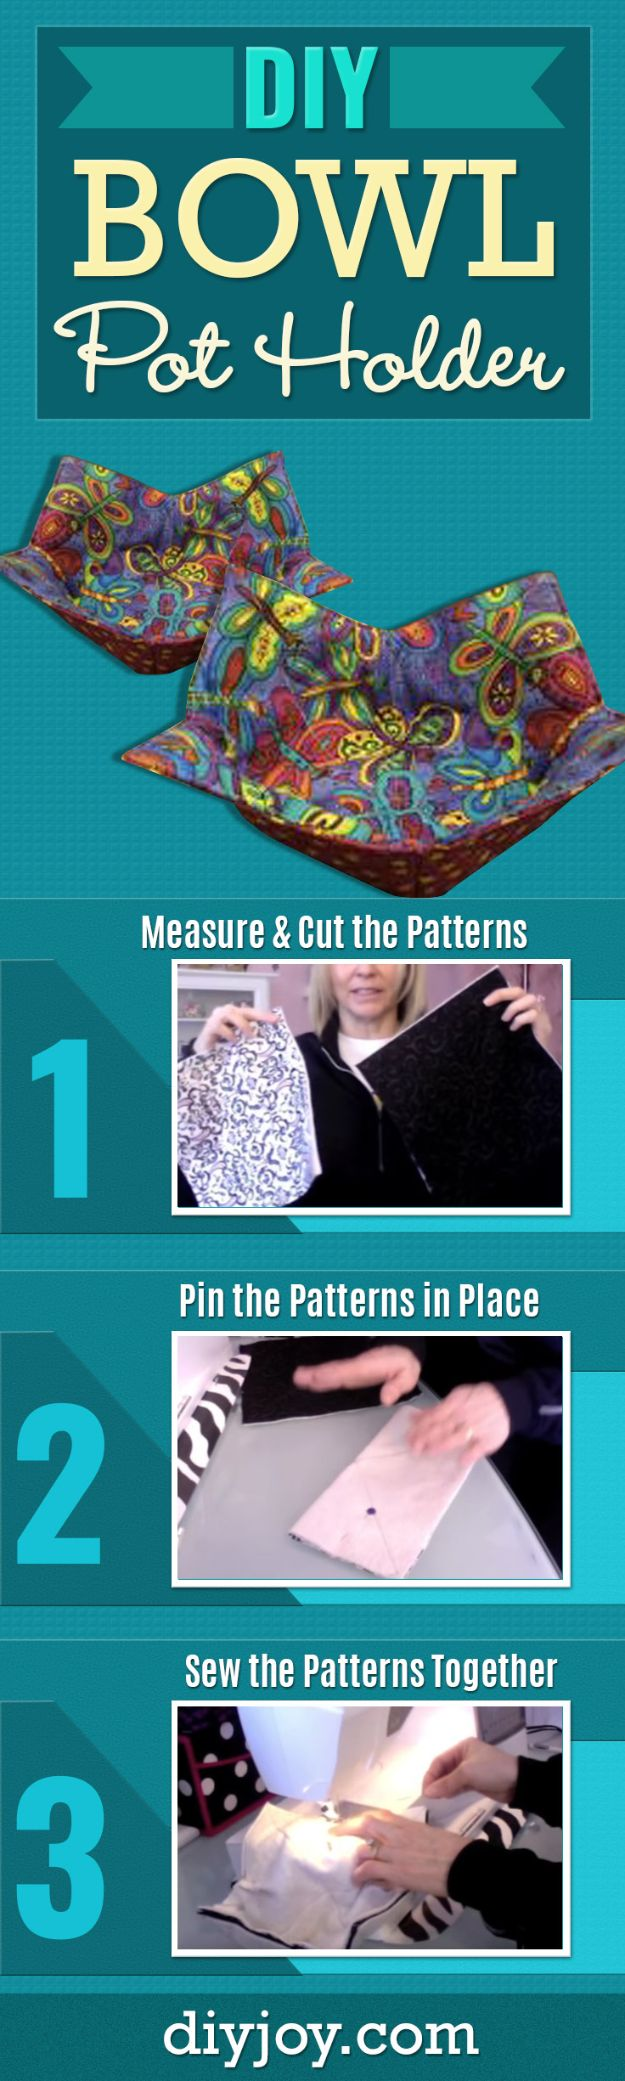 DIY Sewing Projects for the Home - DIY Bowl Pot Holder - Easy DIY Christmas Gifts and Ideas for Making Kitchen, Bedroom and Bathroom Decor - Free Step by Step Tutorial to Sew